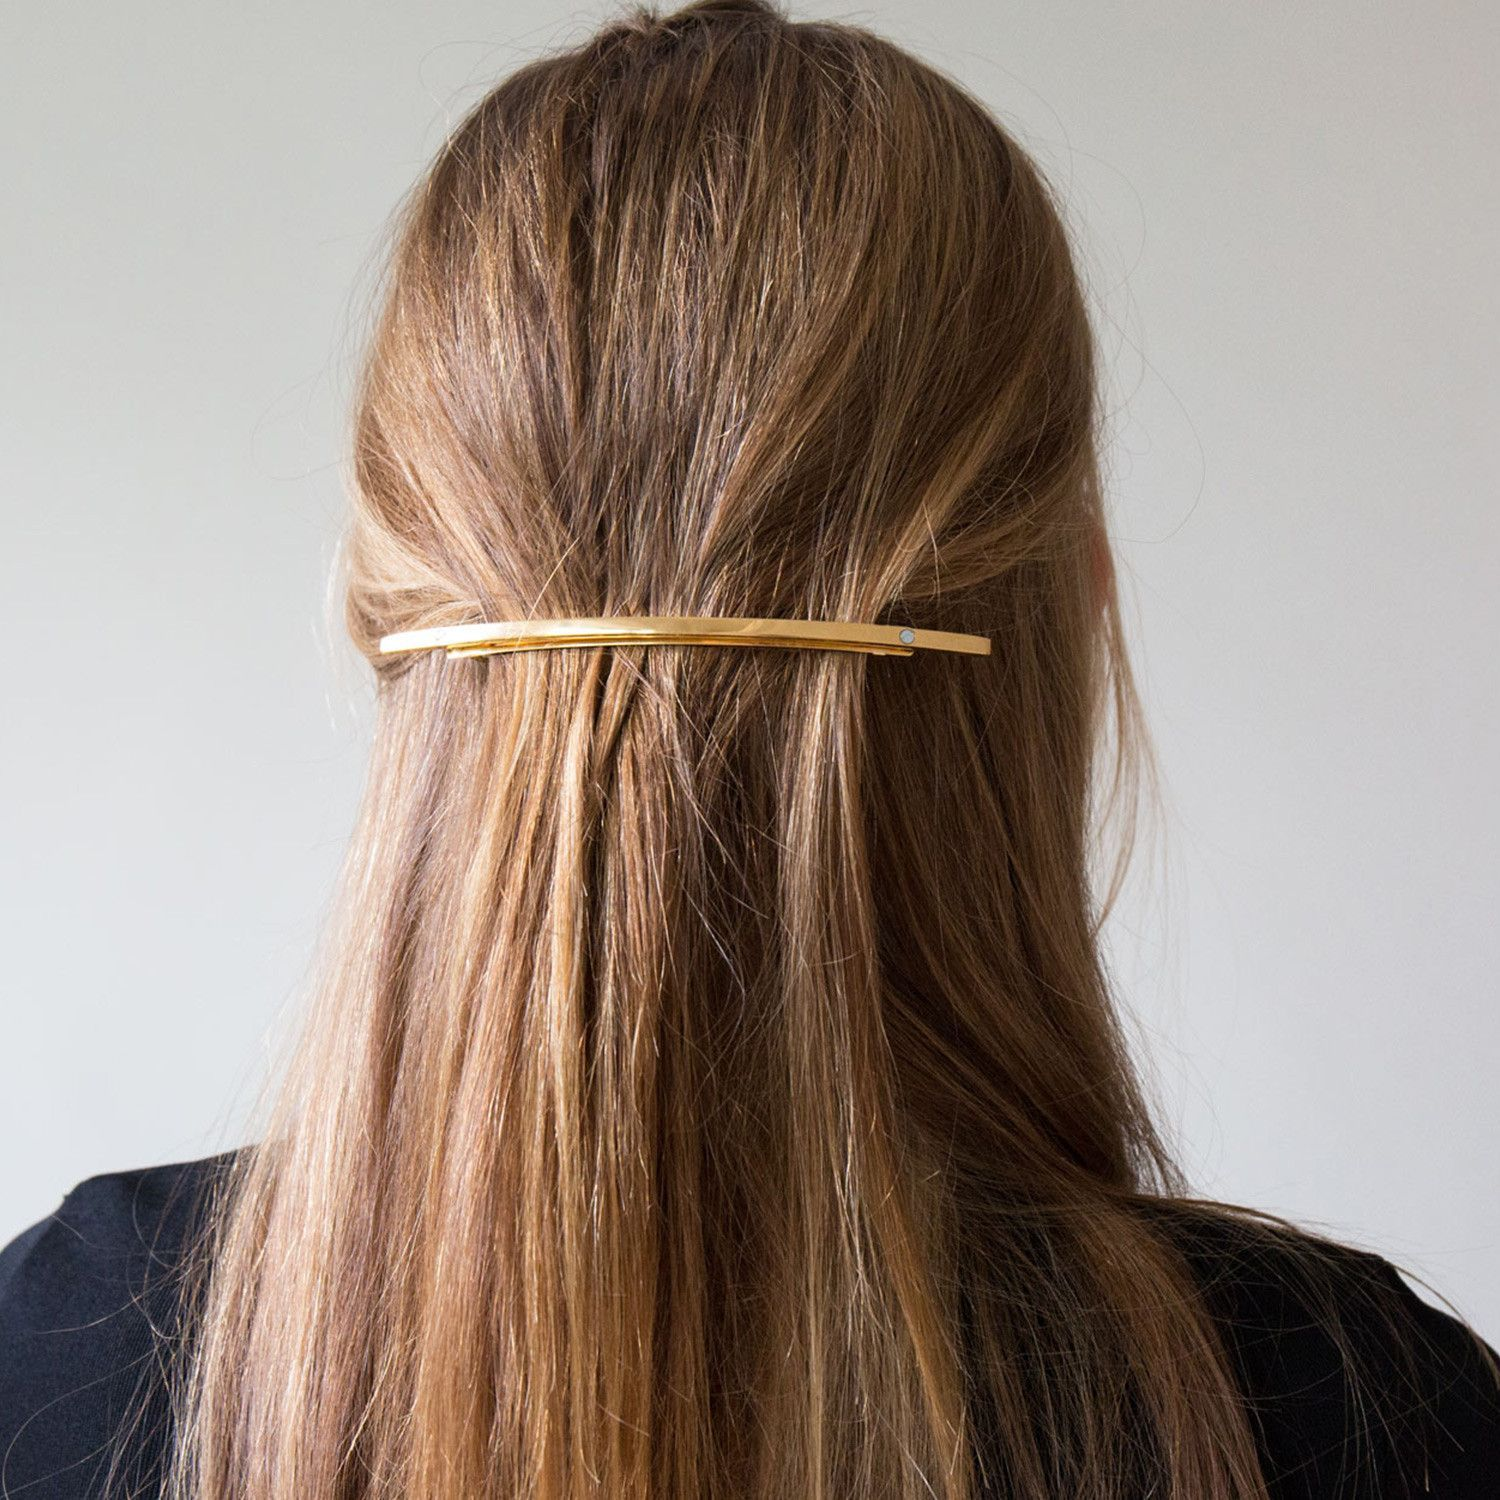 Barrette Hairstyles Enchanting Sylvain Le Hen Gold Hair Barrette  Gold Hair Hair Barrettes And